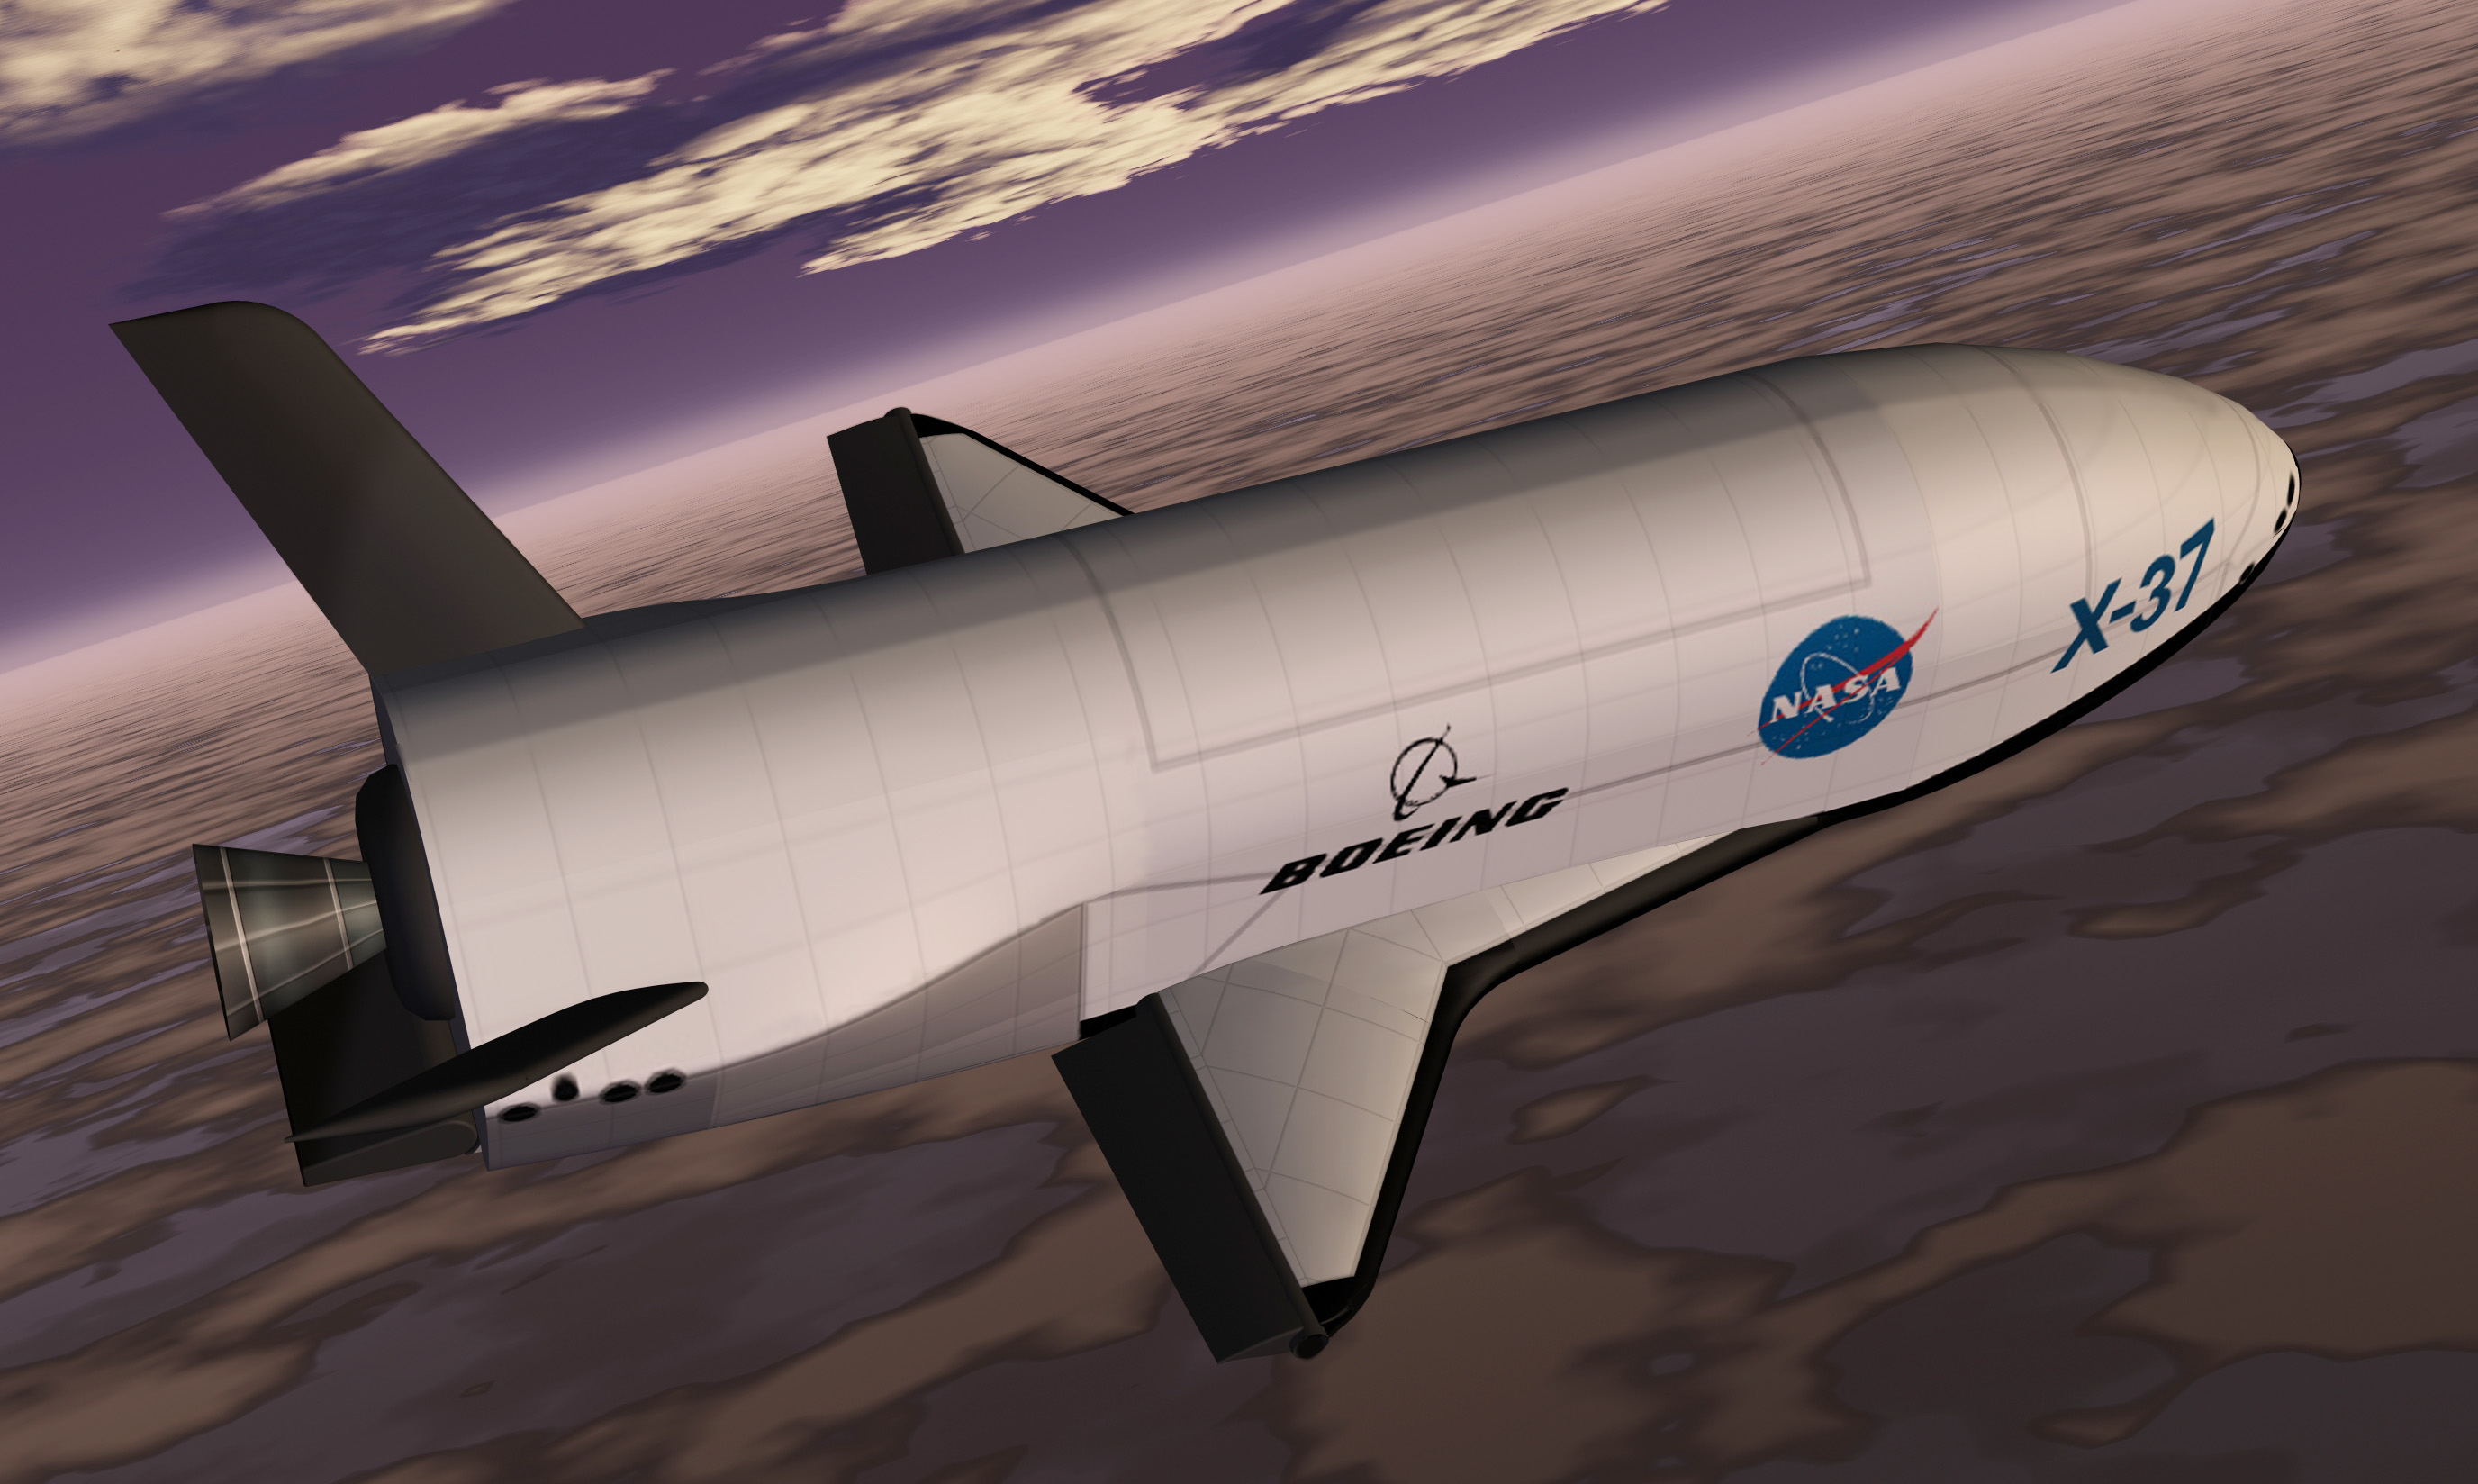 X-37_spacecraft,_artist's_rendition